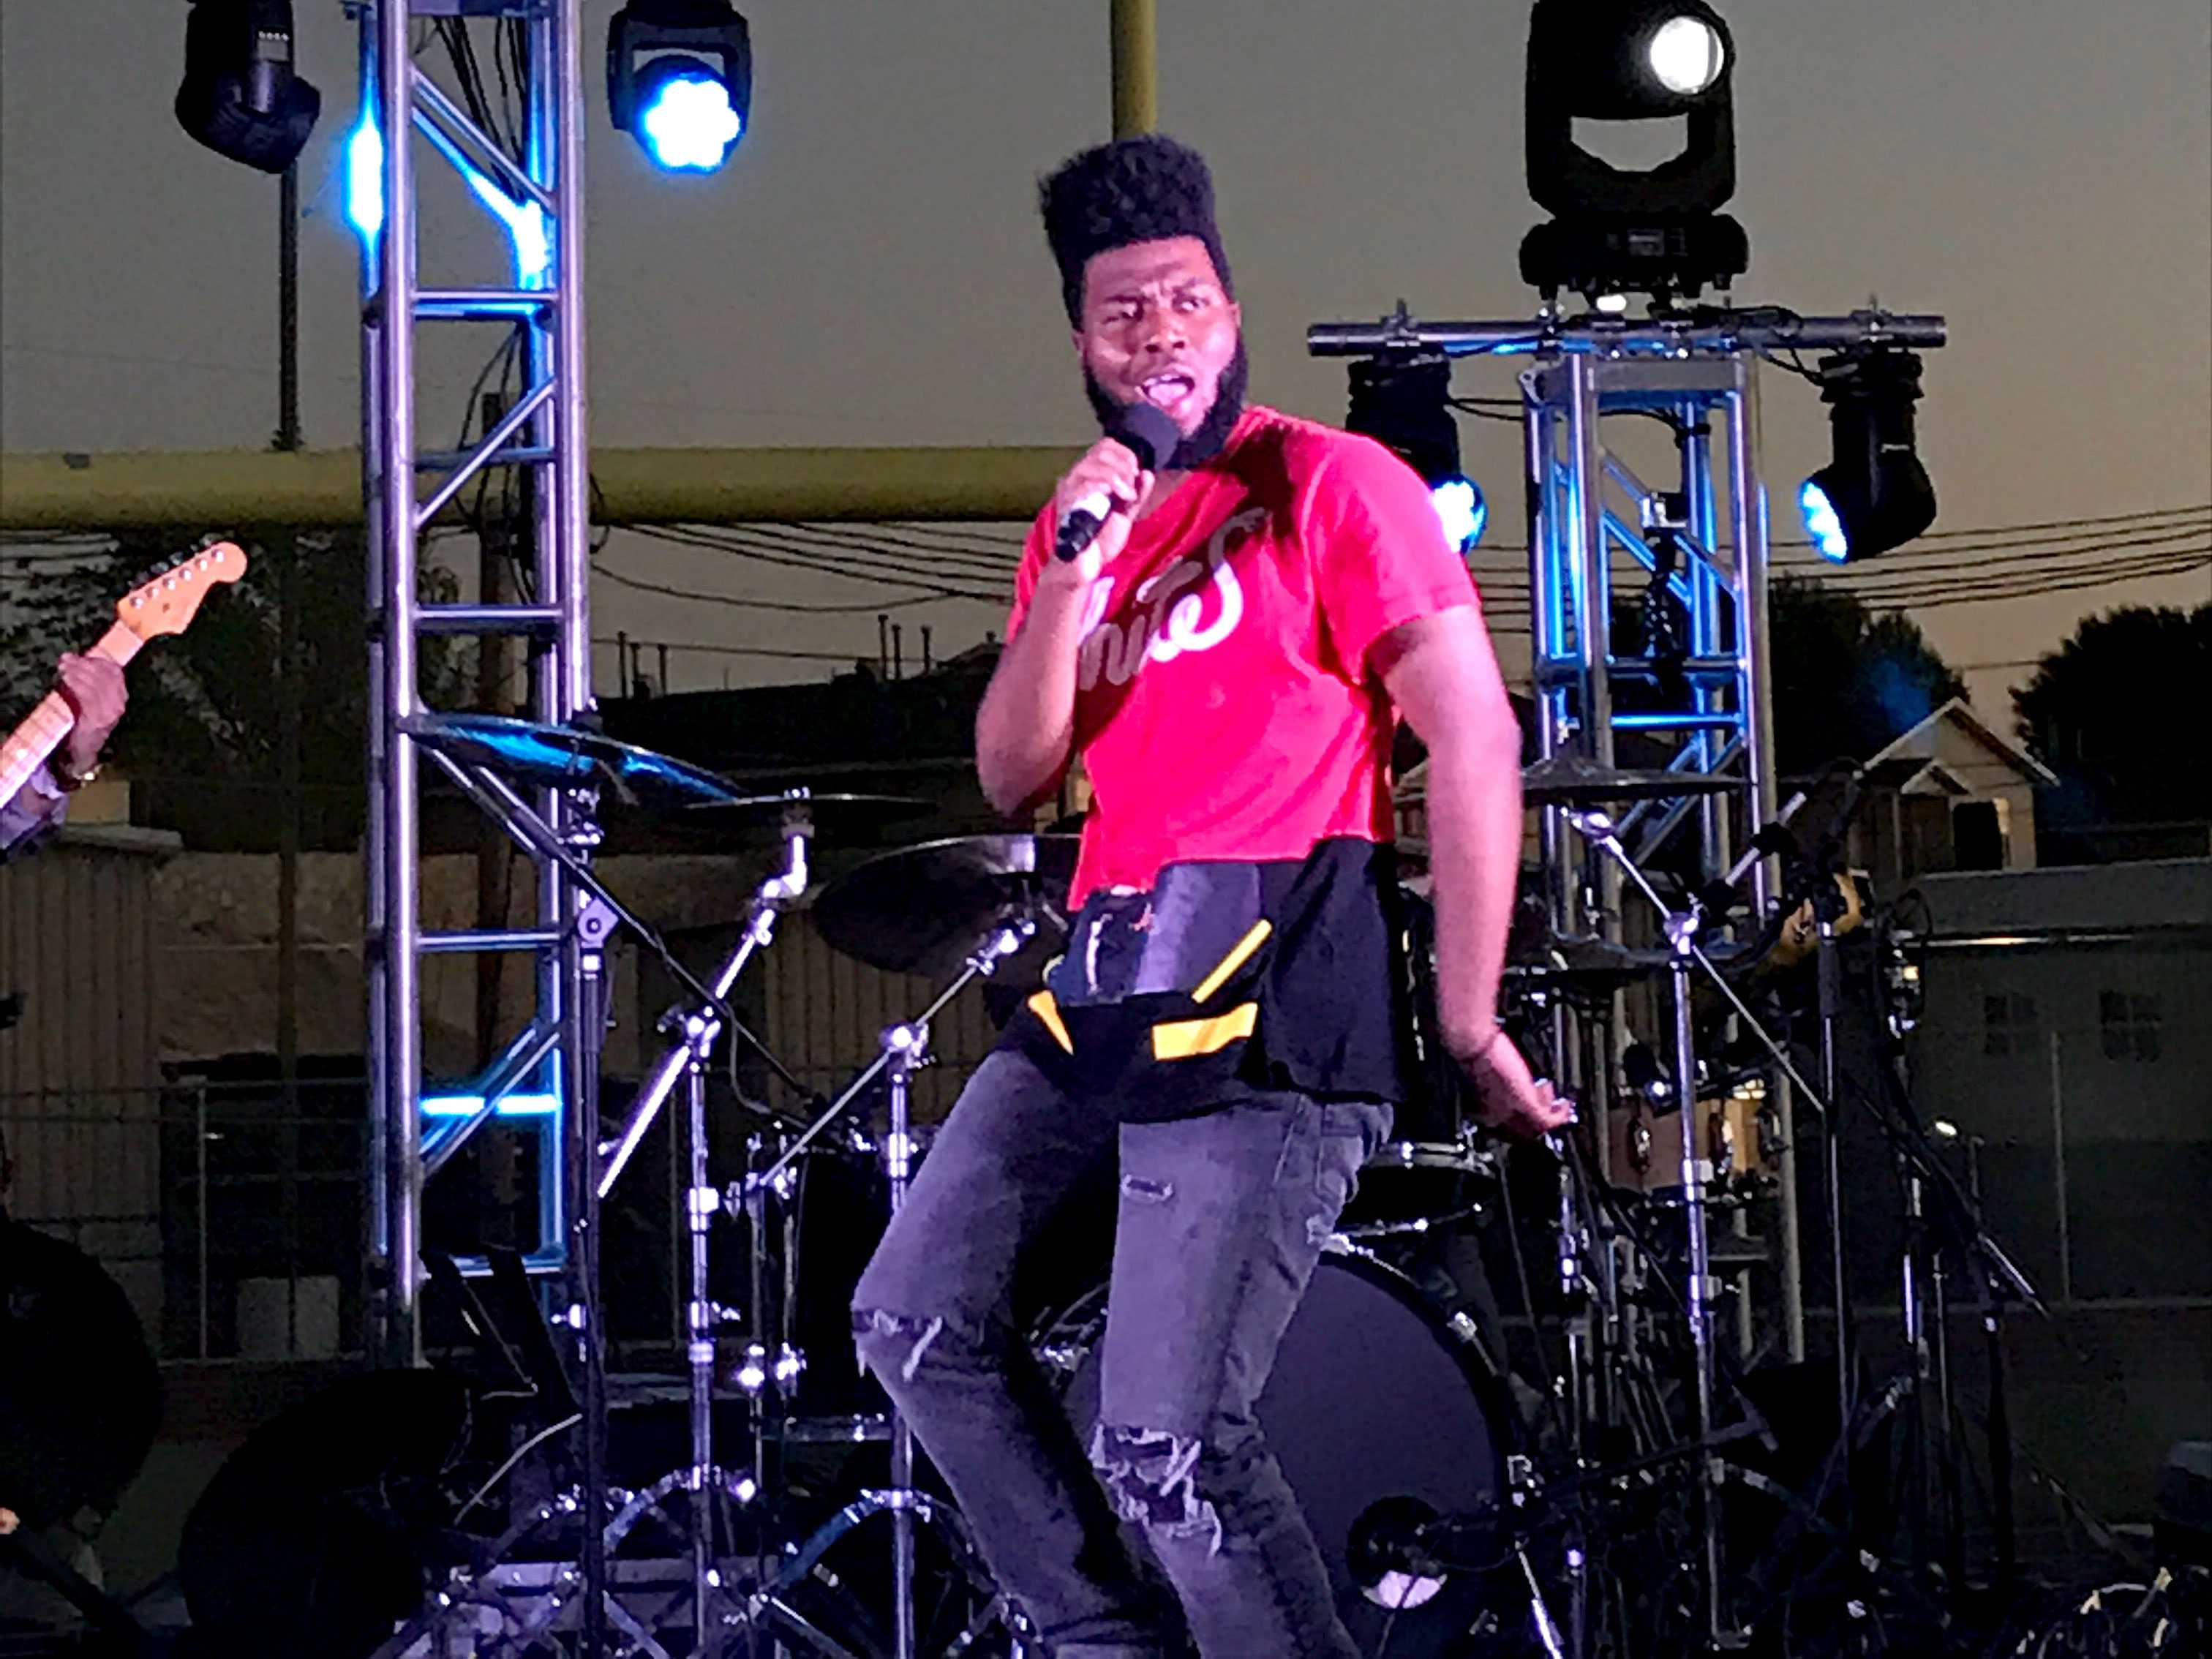 Khalid performed an invite-only show on Friday, March 24 at Americas High School for Spotify Premium members in El Paso.